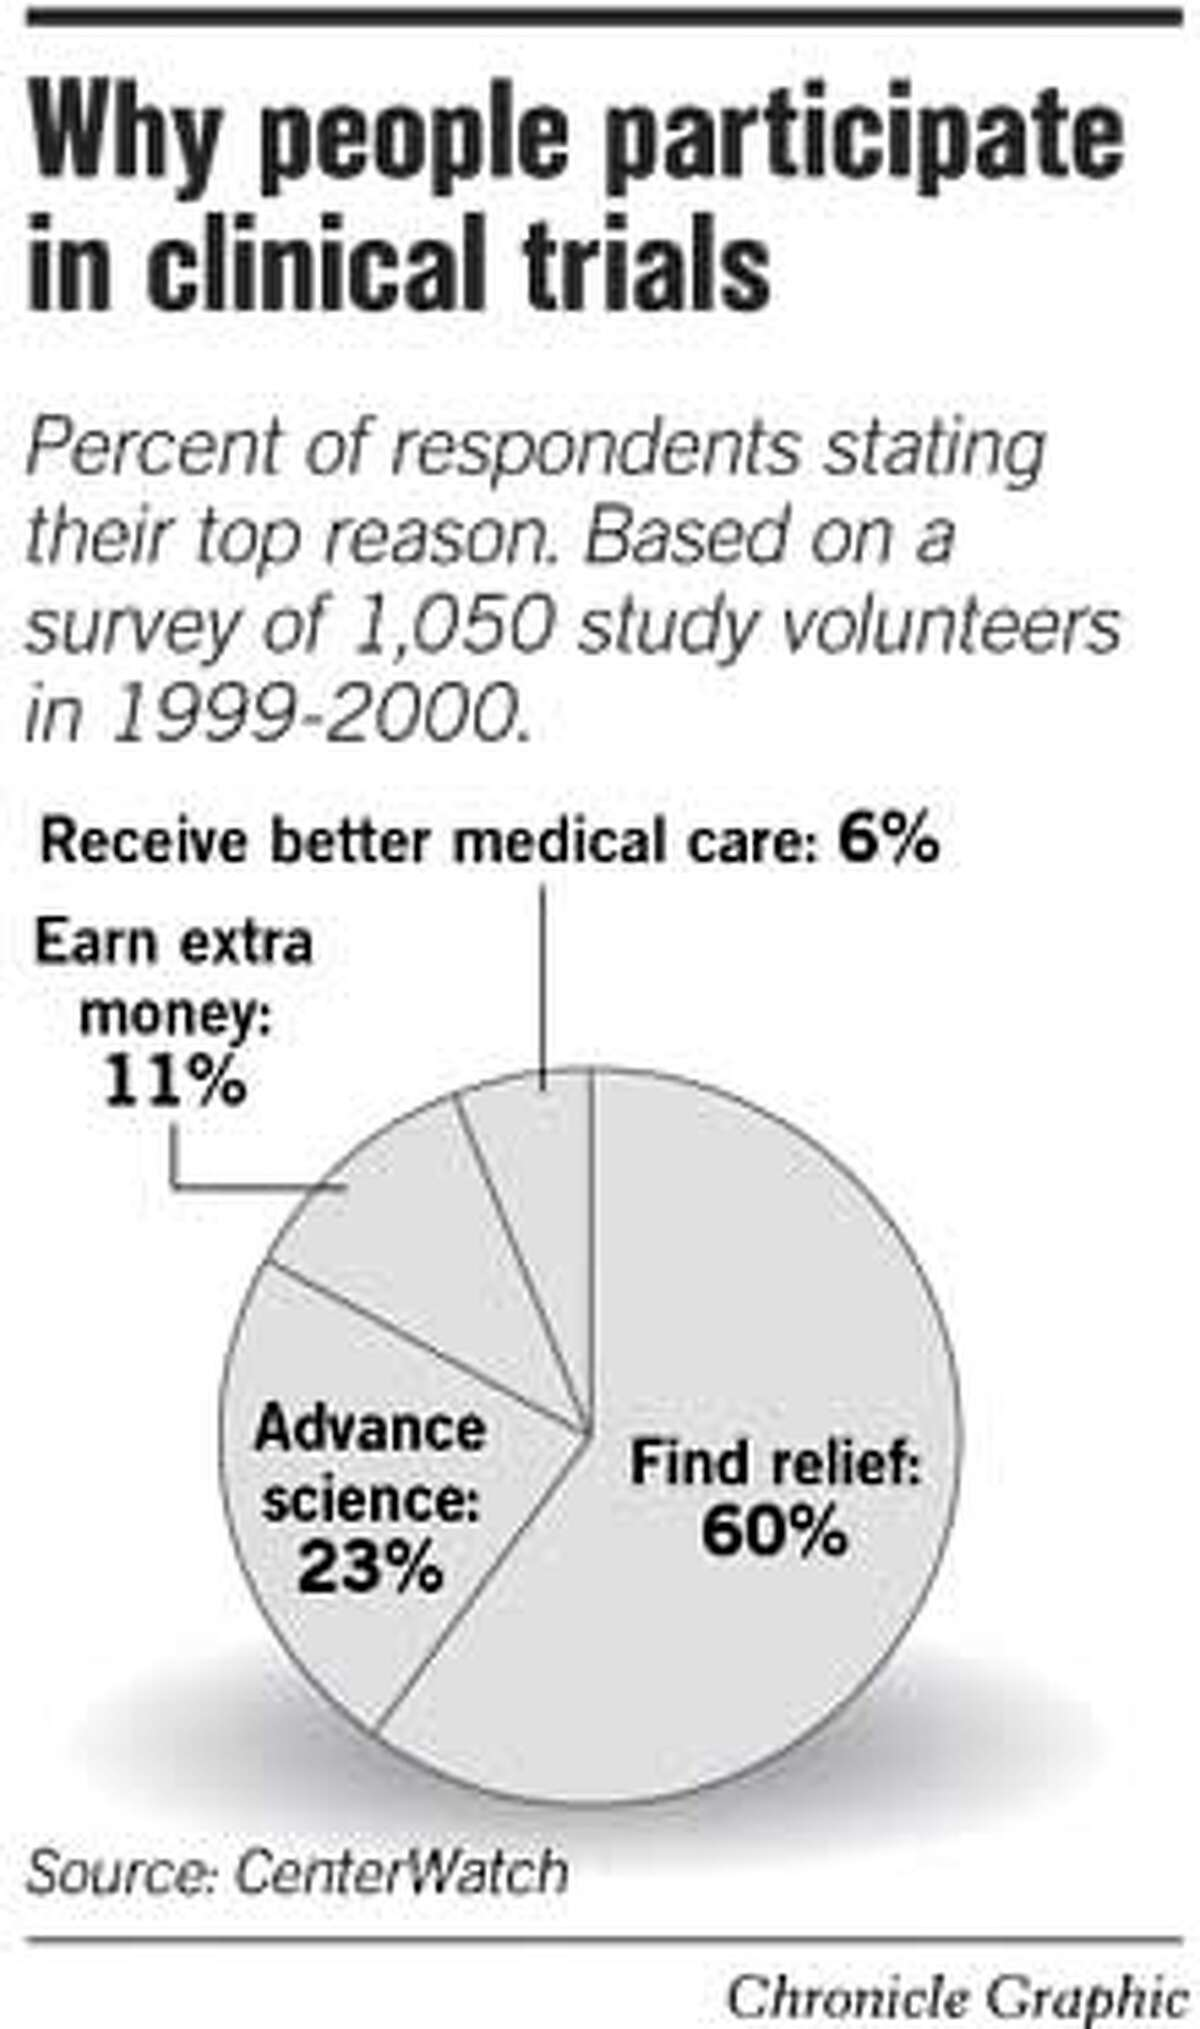 Why People Participate in Clinical Trials. Chronicle Graphic